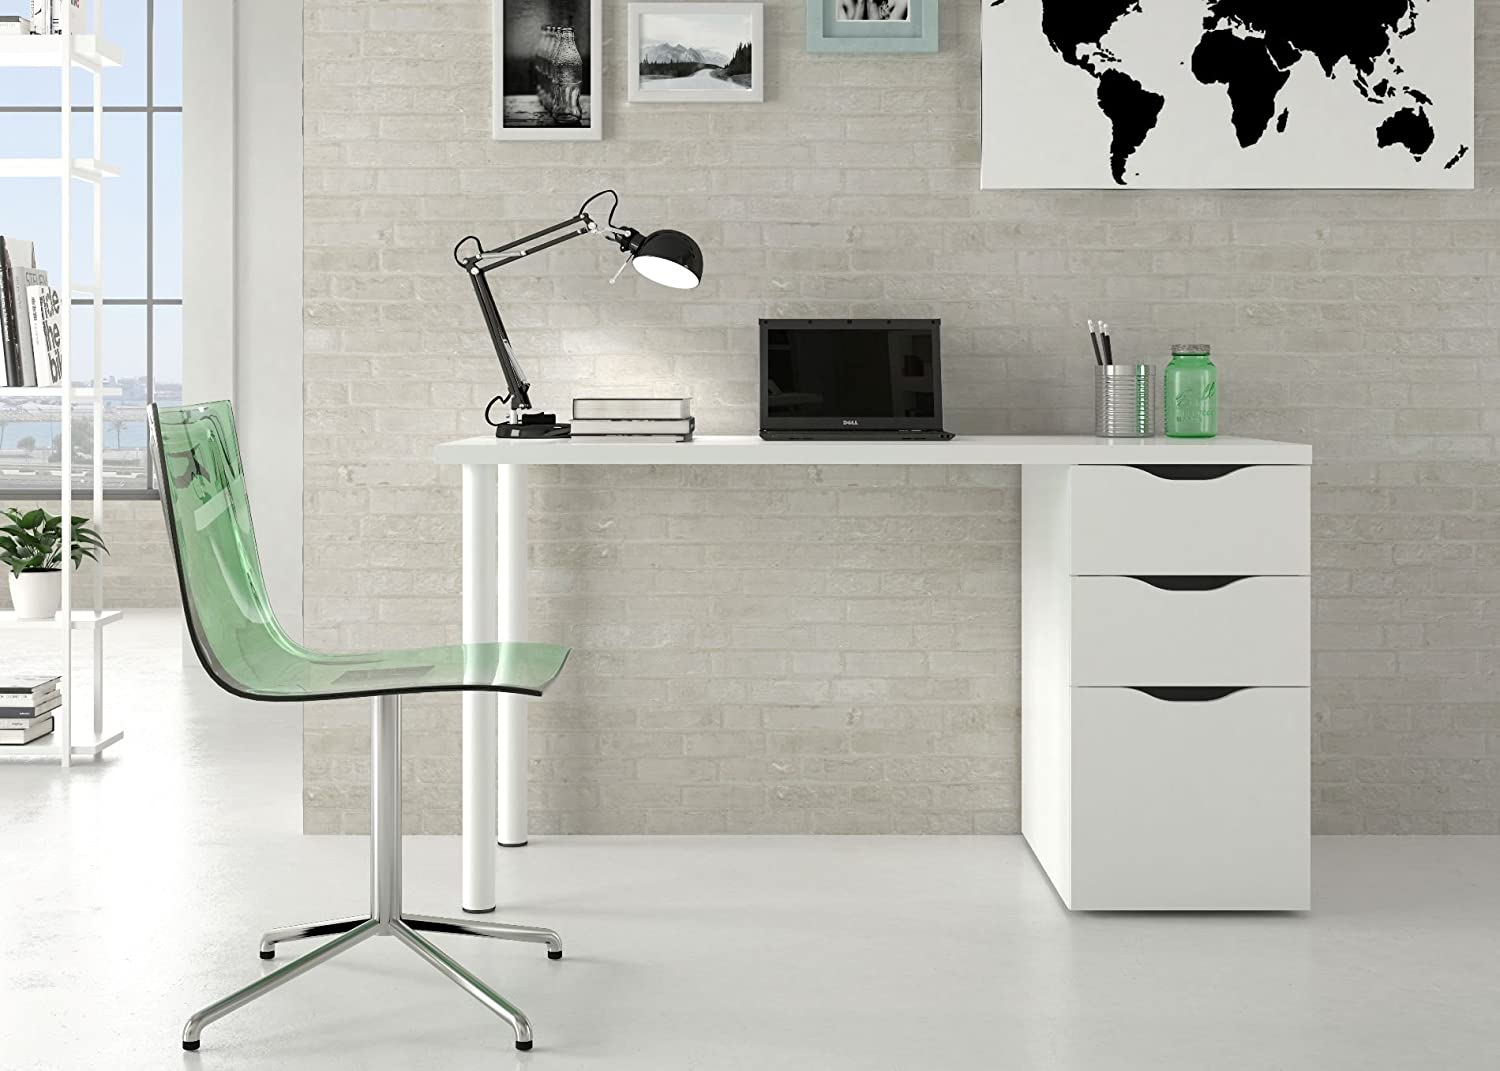 white gloss office desk. White Gloss Office Desk. Madrid Table Desk - By Furniture Factor: E